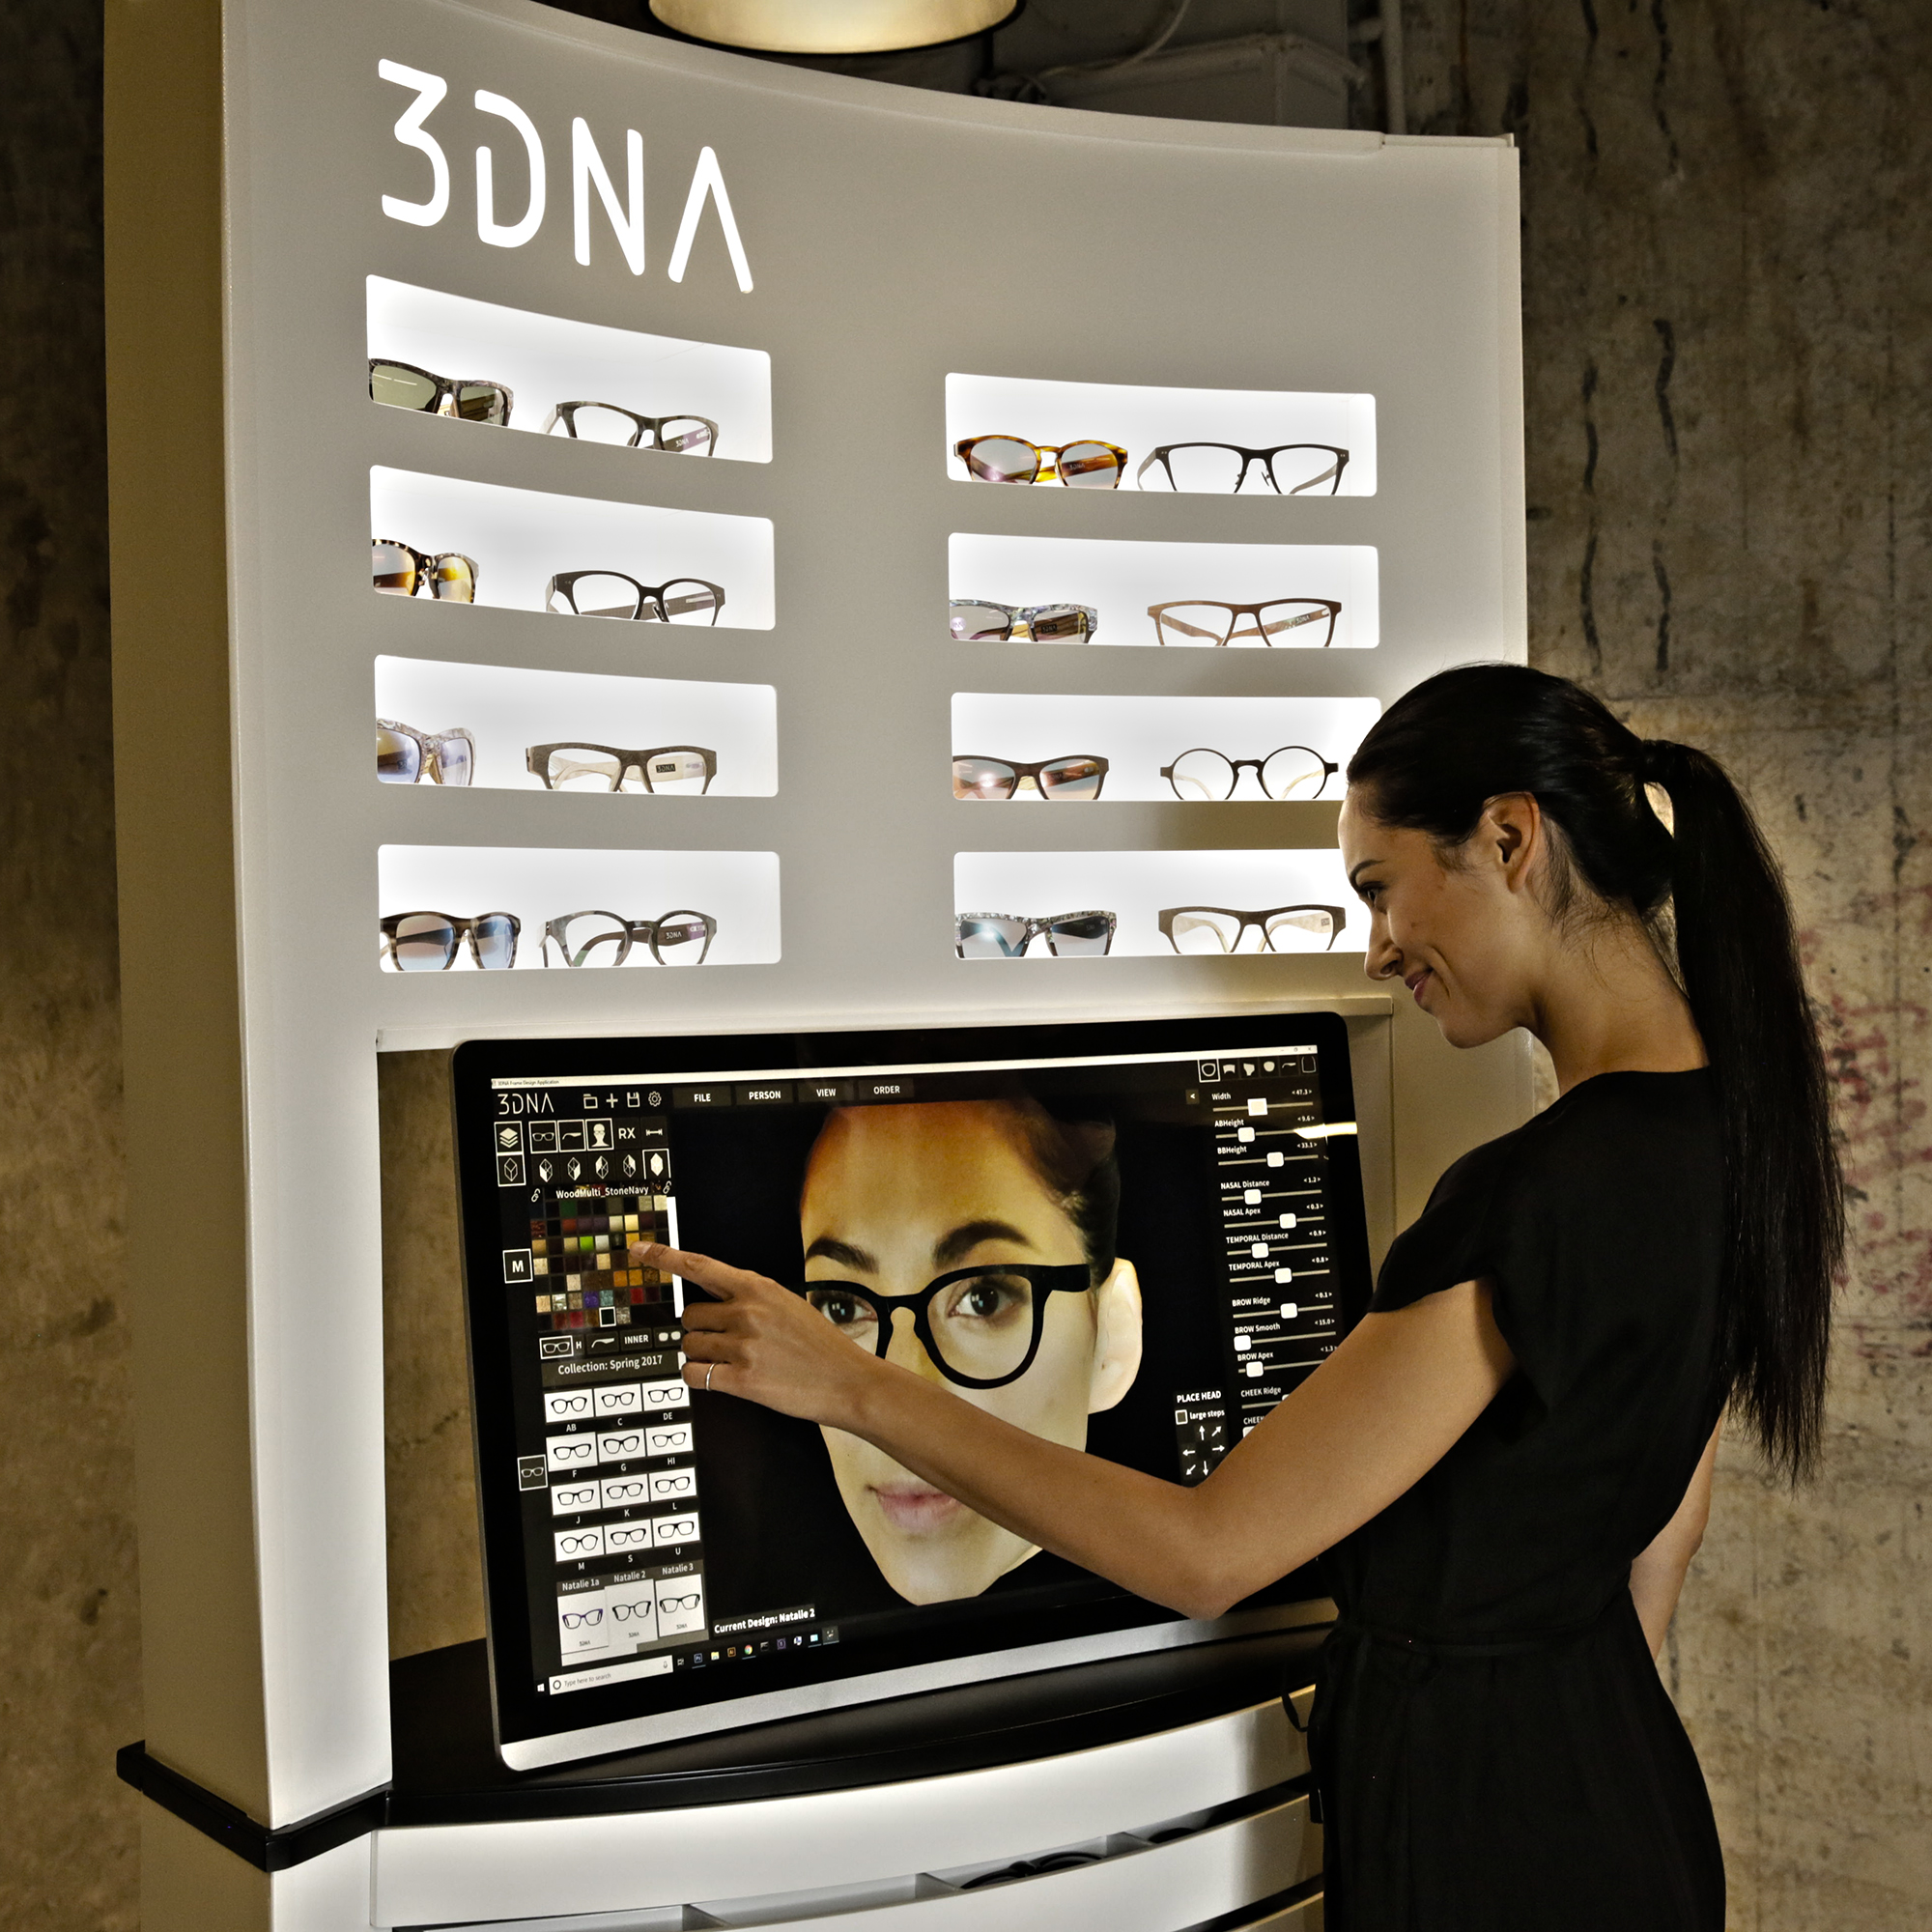 The 3DNA Eyewear system. Photo via Eye-DNA.